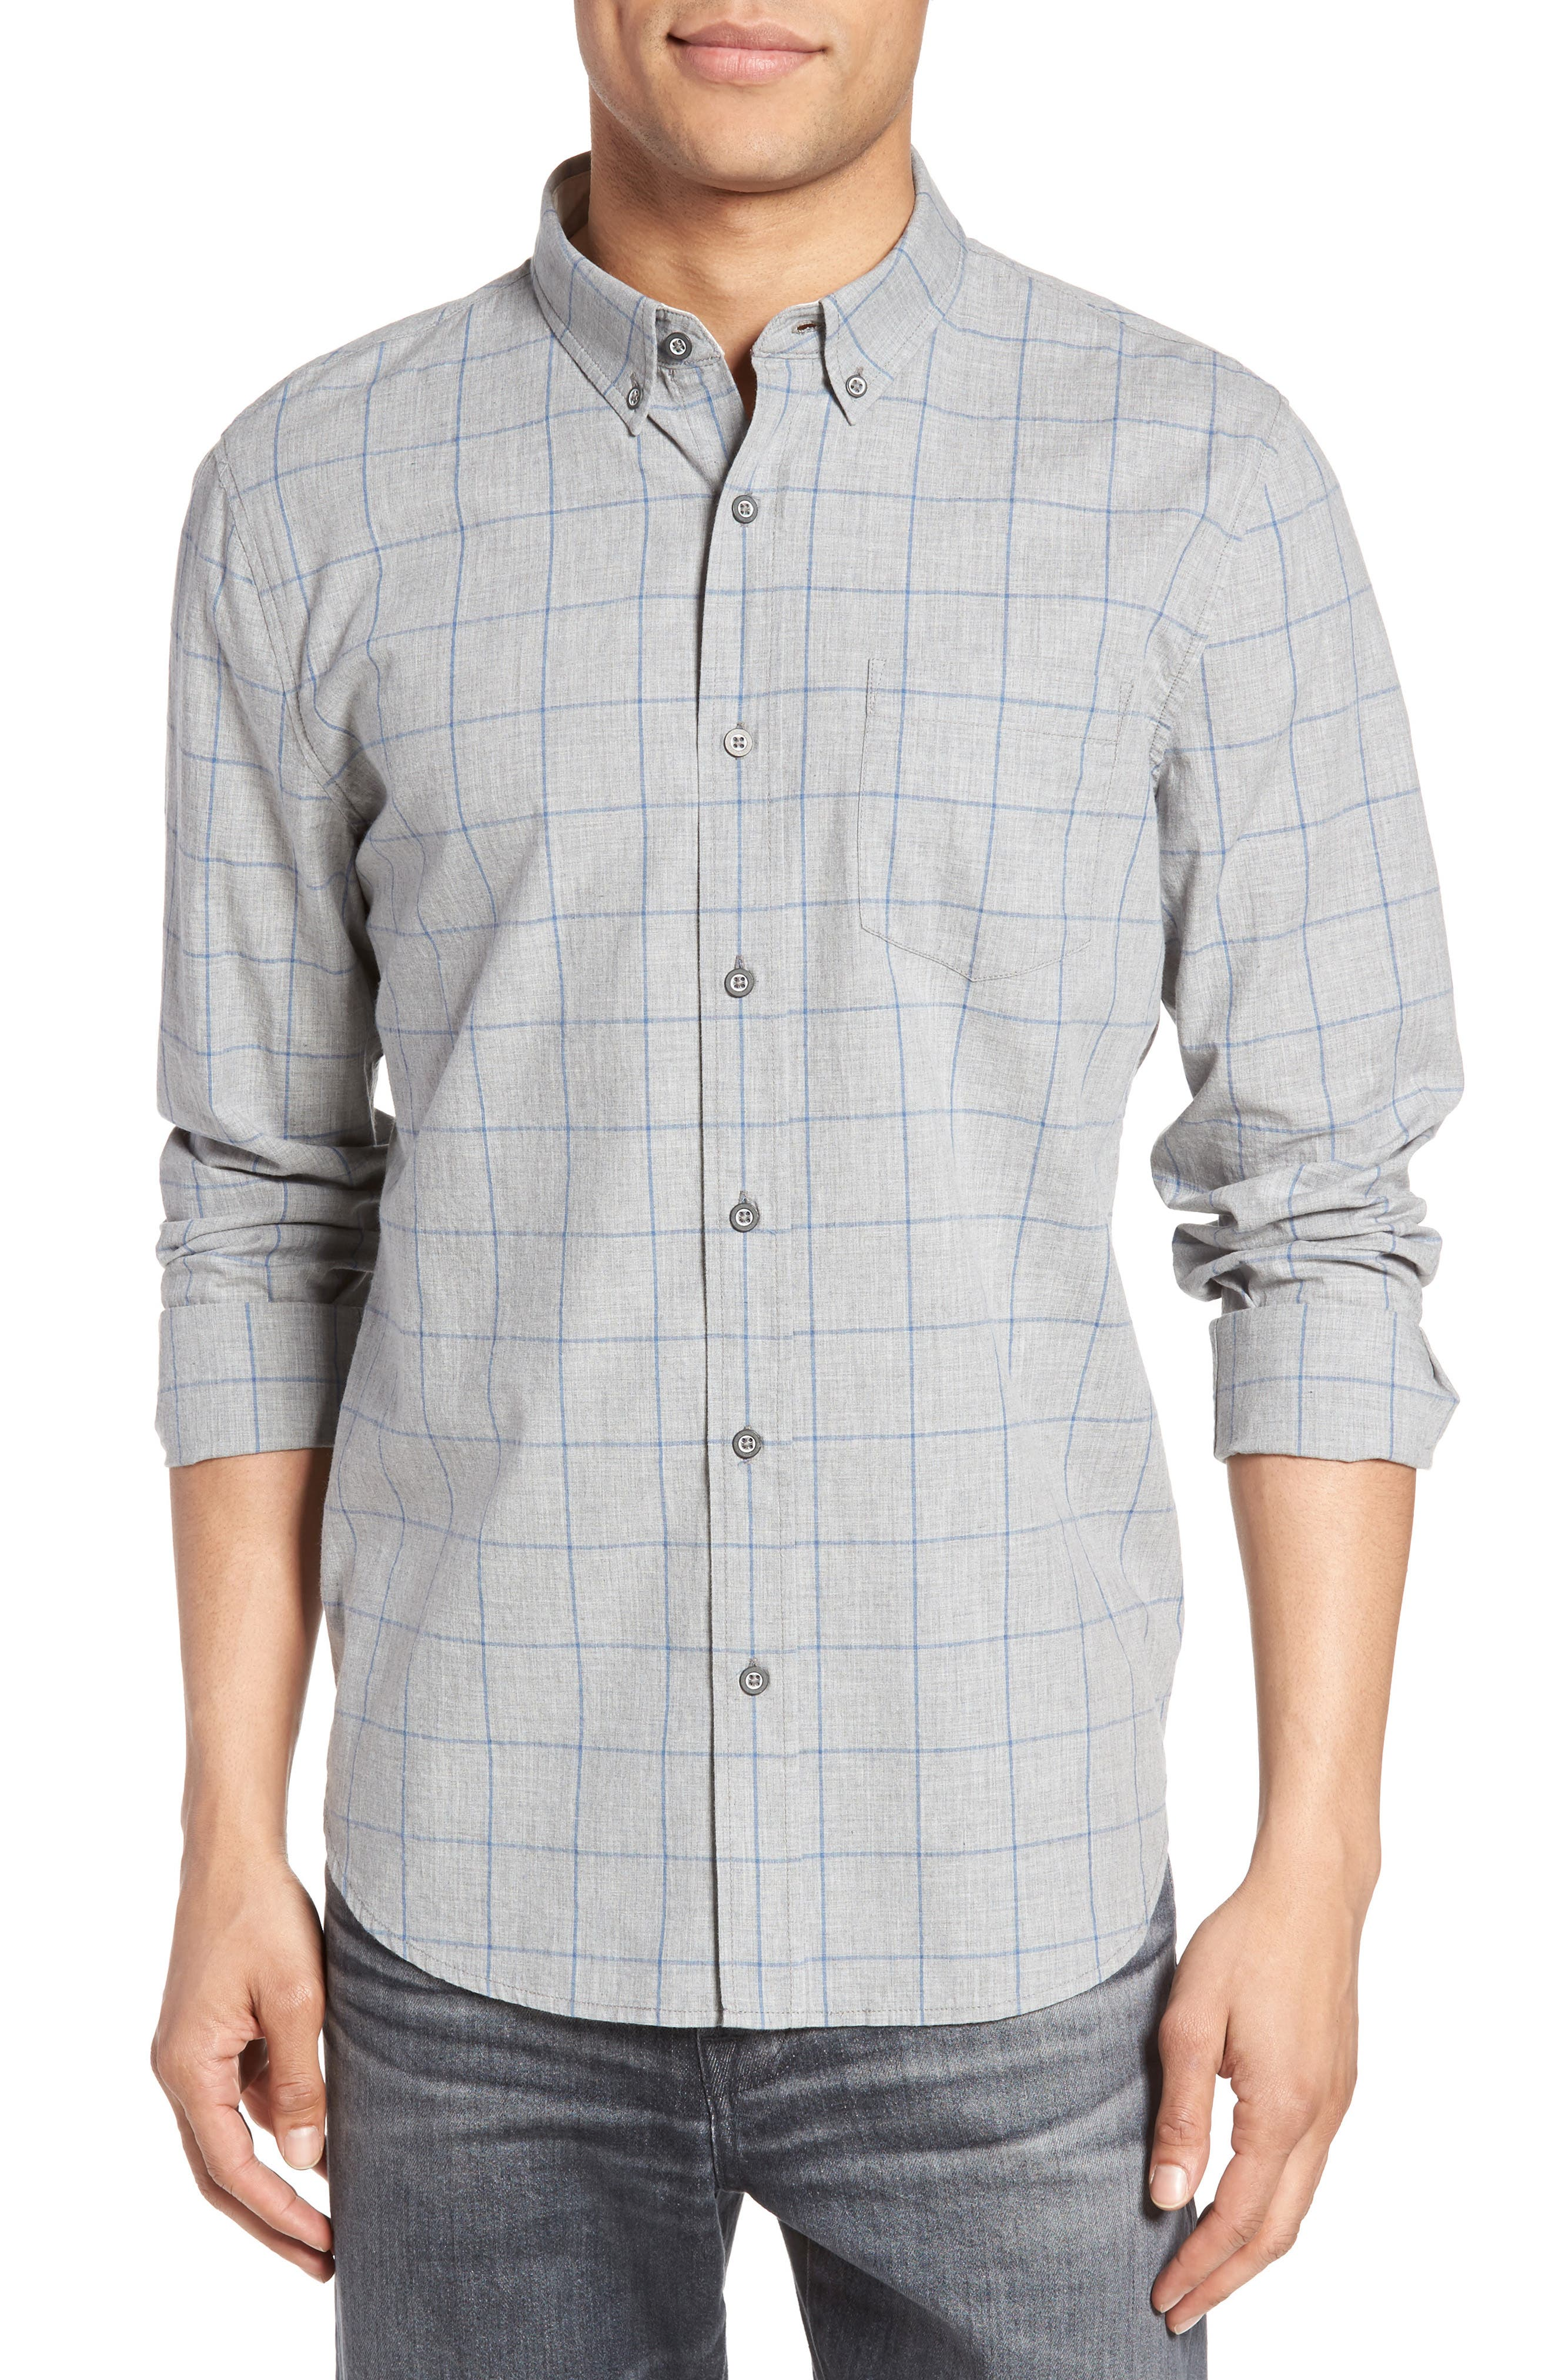 Grady Cotton Sport Shirt,                             Main thumbnail 1, color,                             Heather Grey/ Sailor Blue